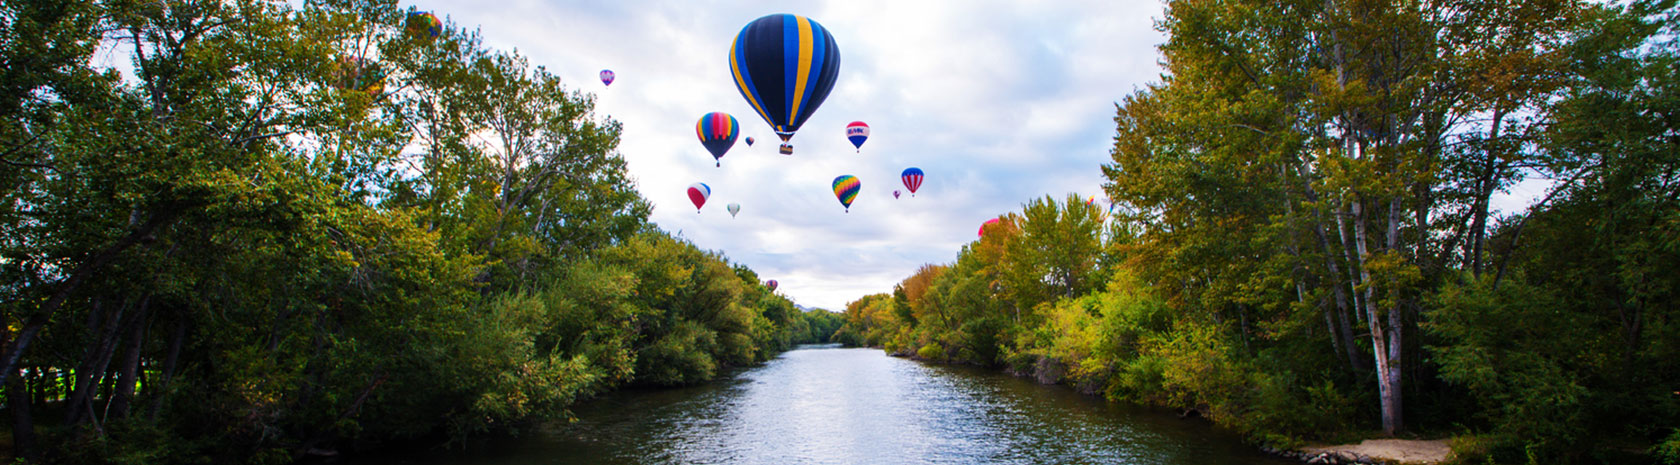 A group of hot air balloons fly over a river with trees on both sides with subtle hints of autumn colors